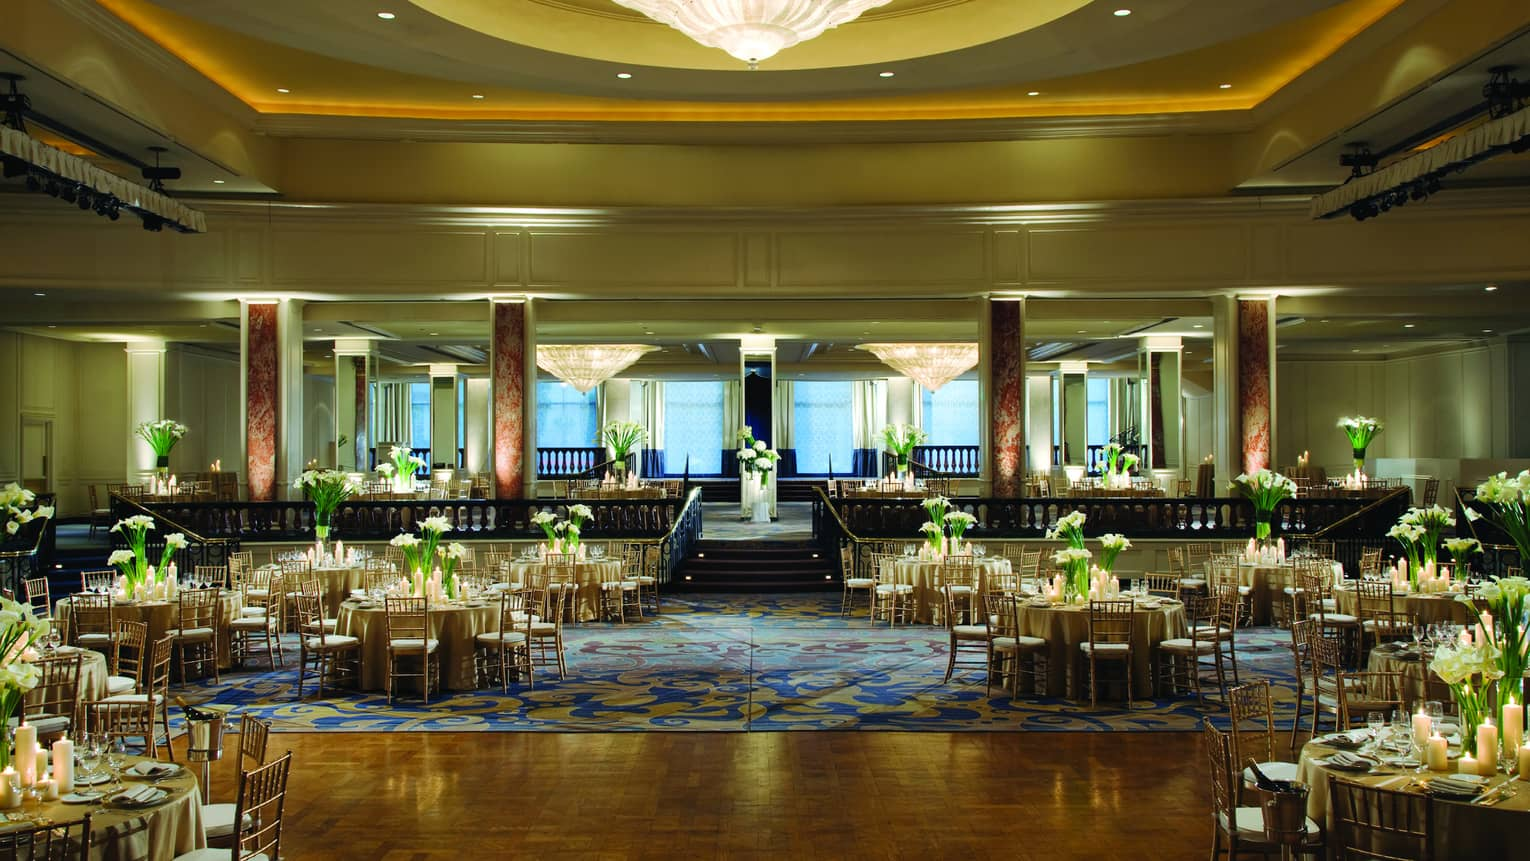 Ballroom dance floor under large cone-shaped crystal chandelier, round banquet tables